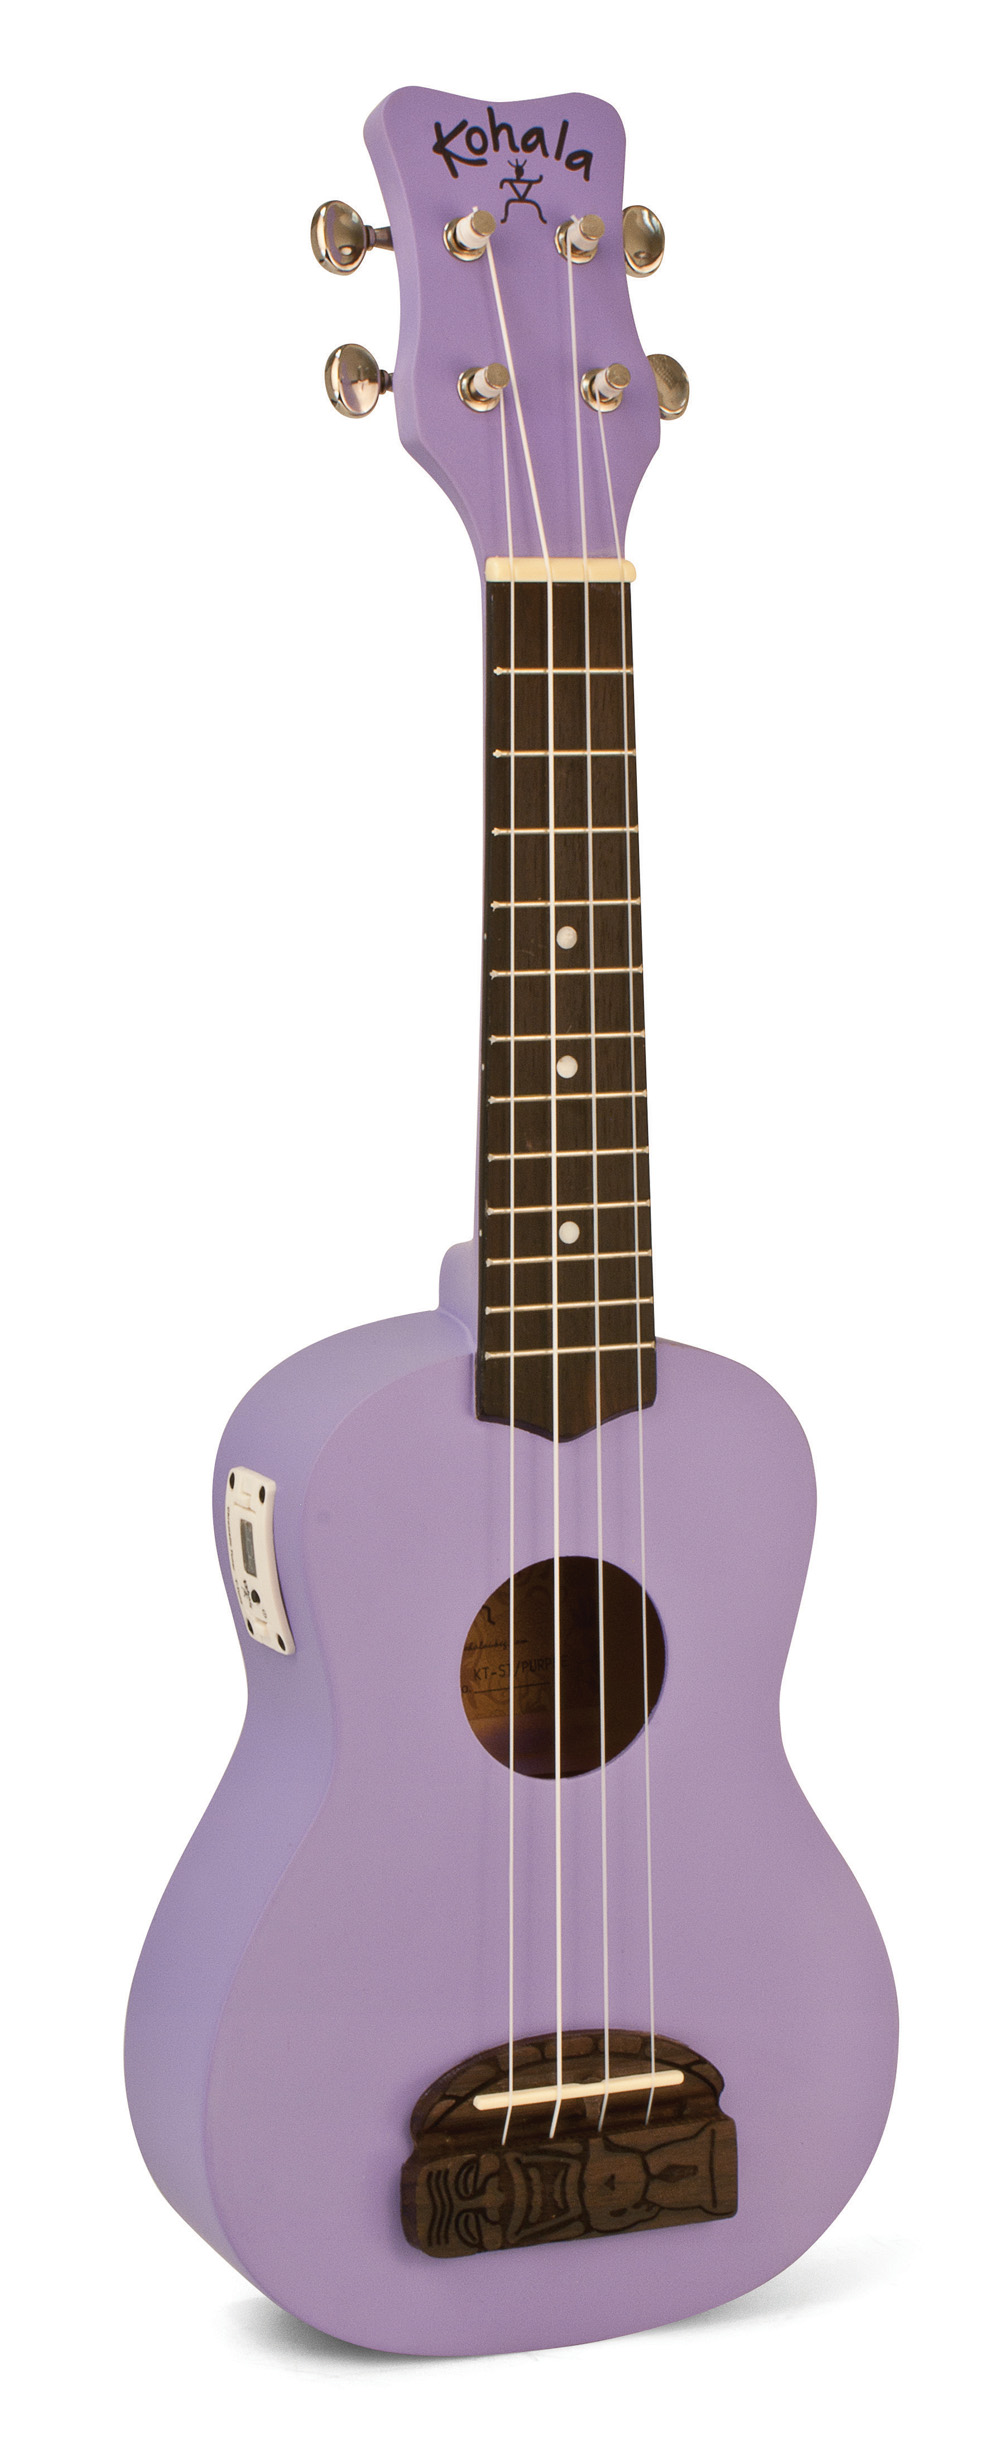 Kohala KT-STPU Tiki Uke Purple Soprano Ukulele with built in tuner